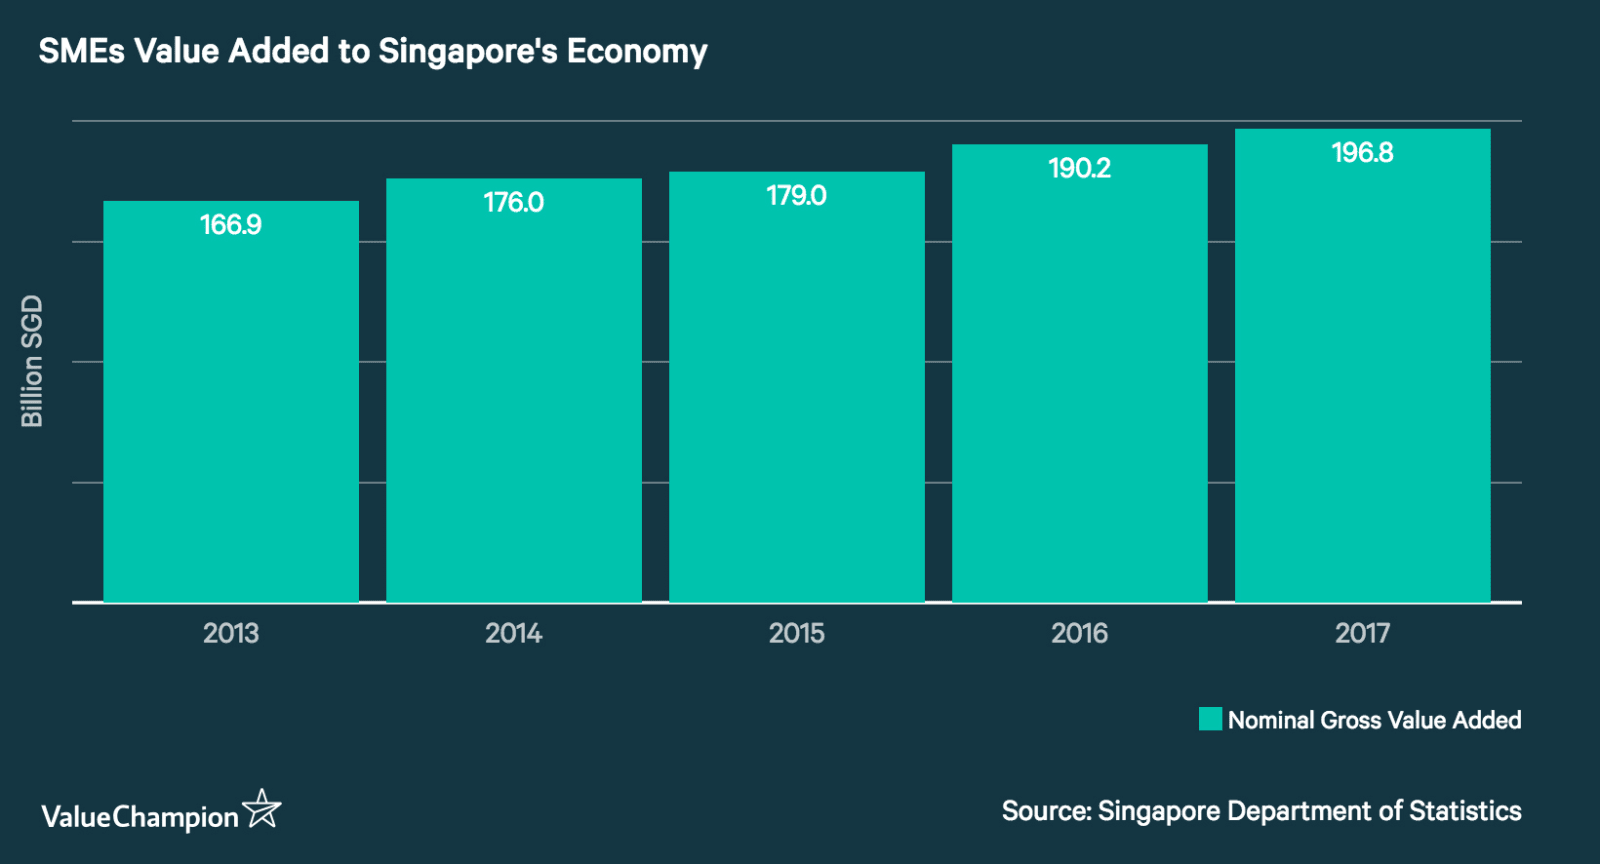 SMEs Value Added to Singapore's Economy 2013-2017